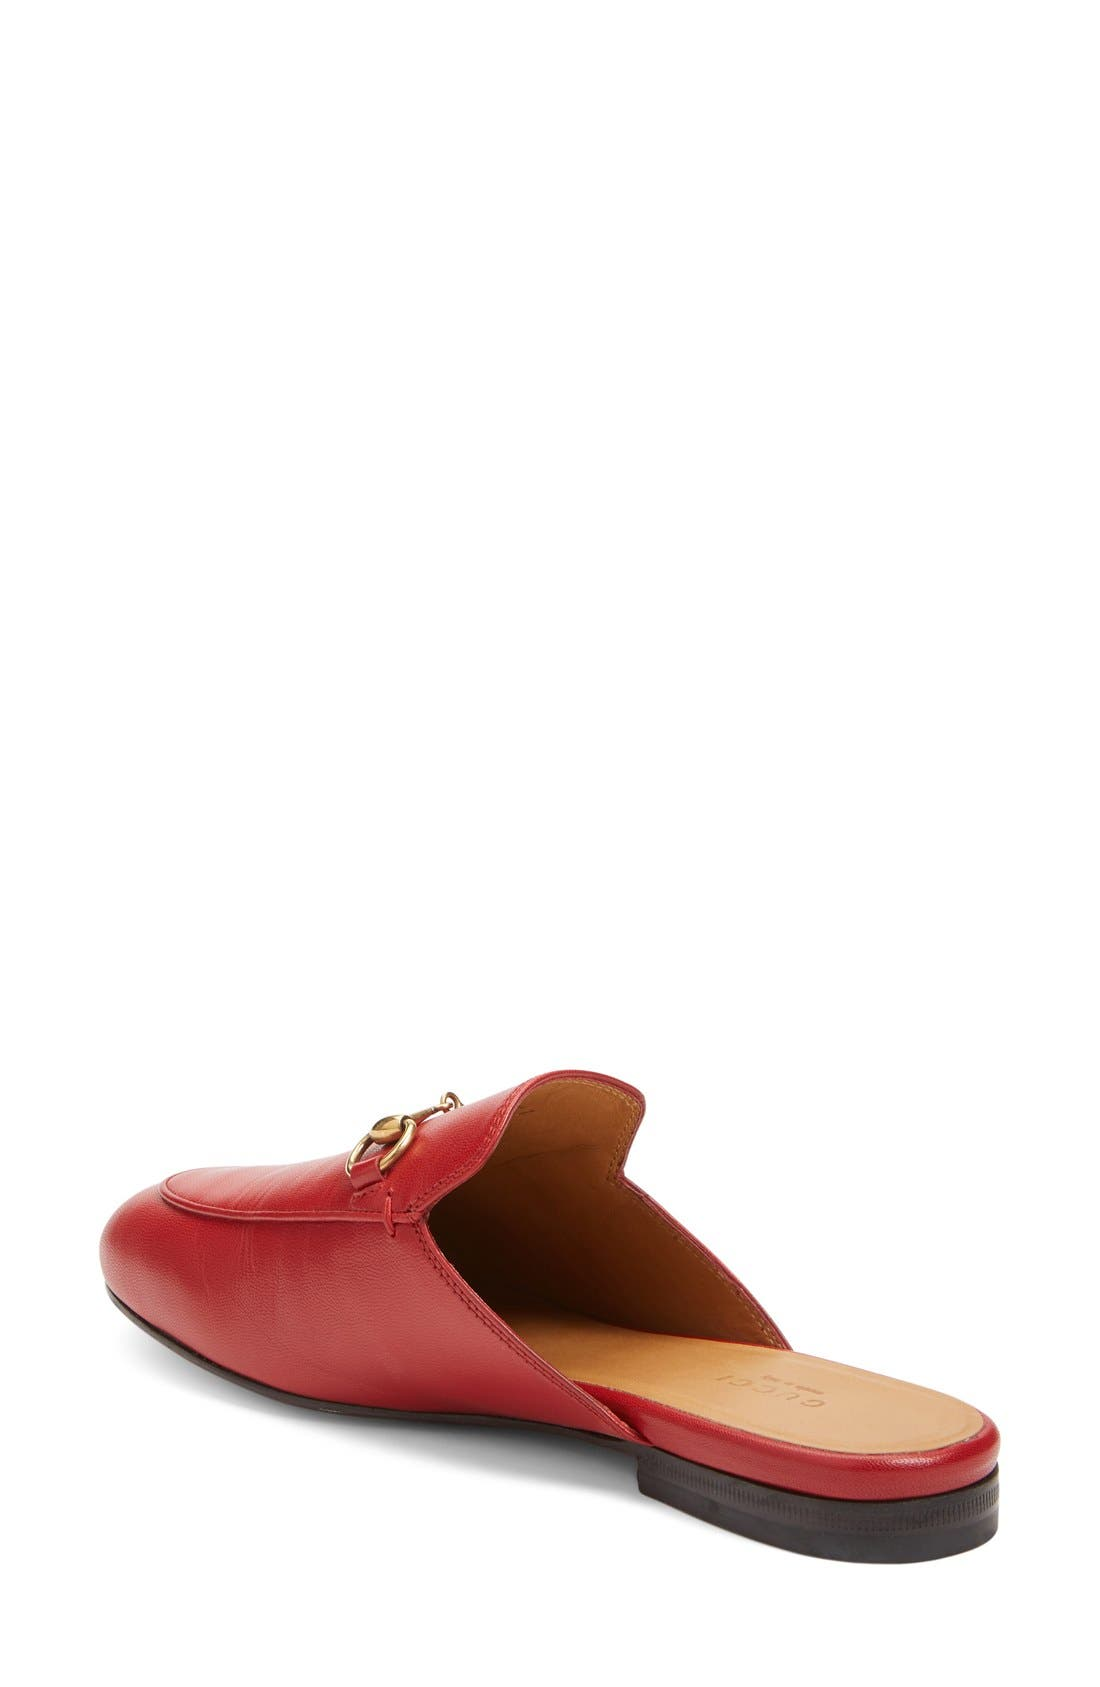 Princetown Loafer Mule,                             Alternate thumbnail 2, color,                             RED LEATHER